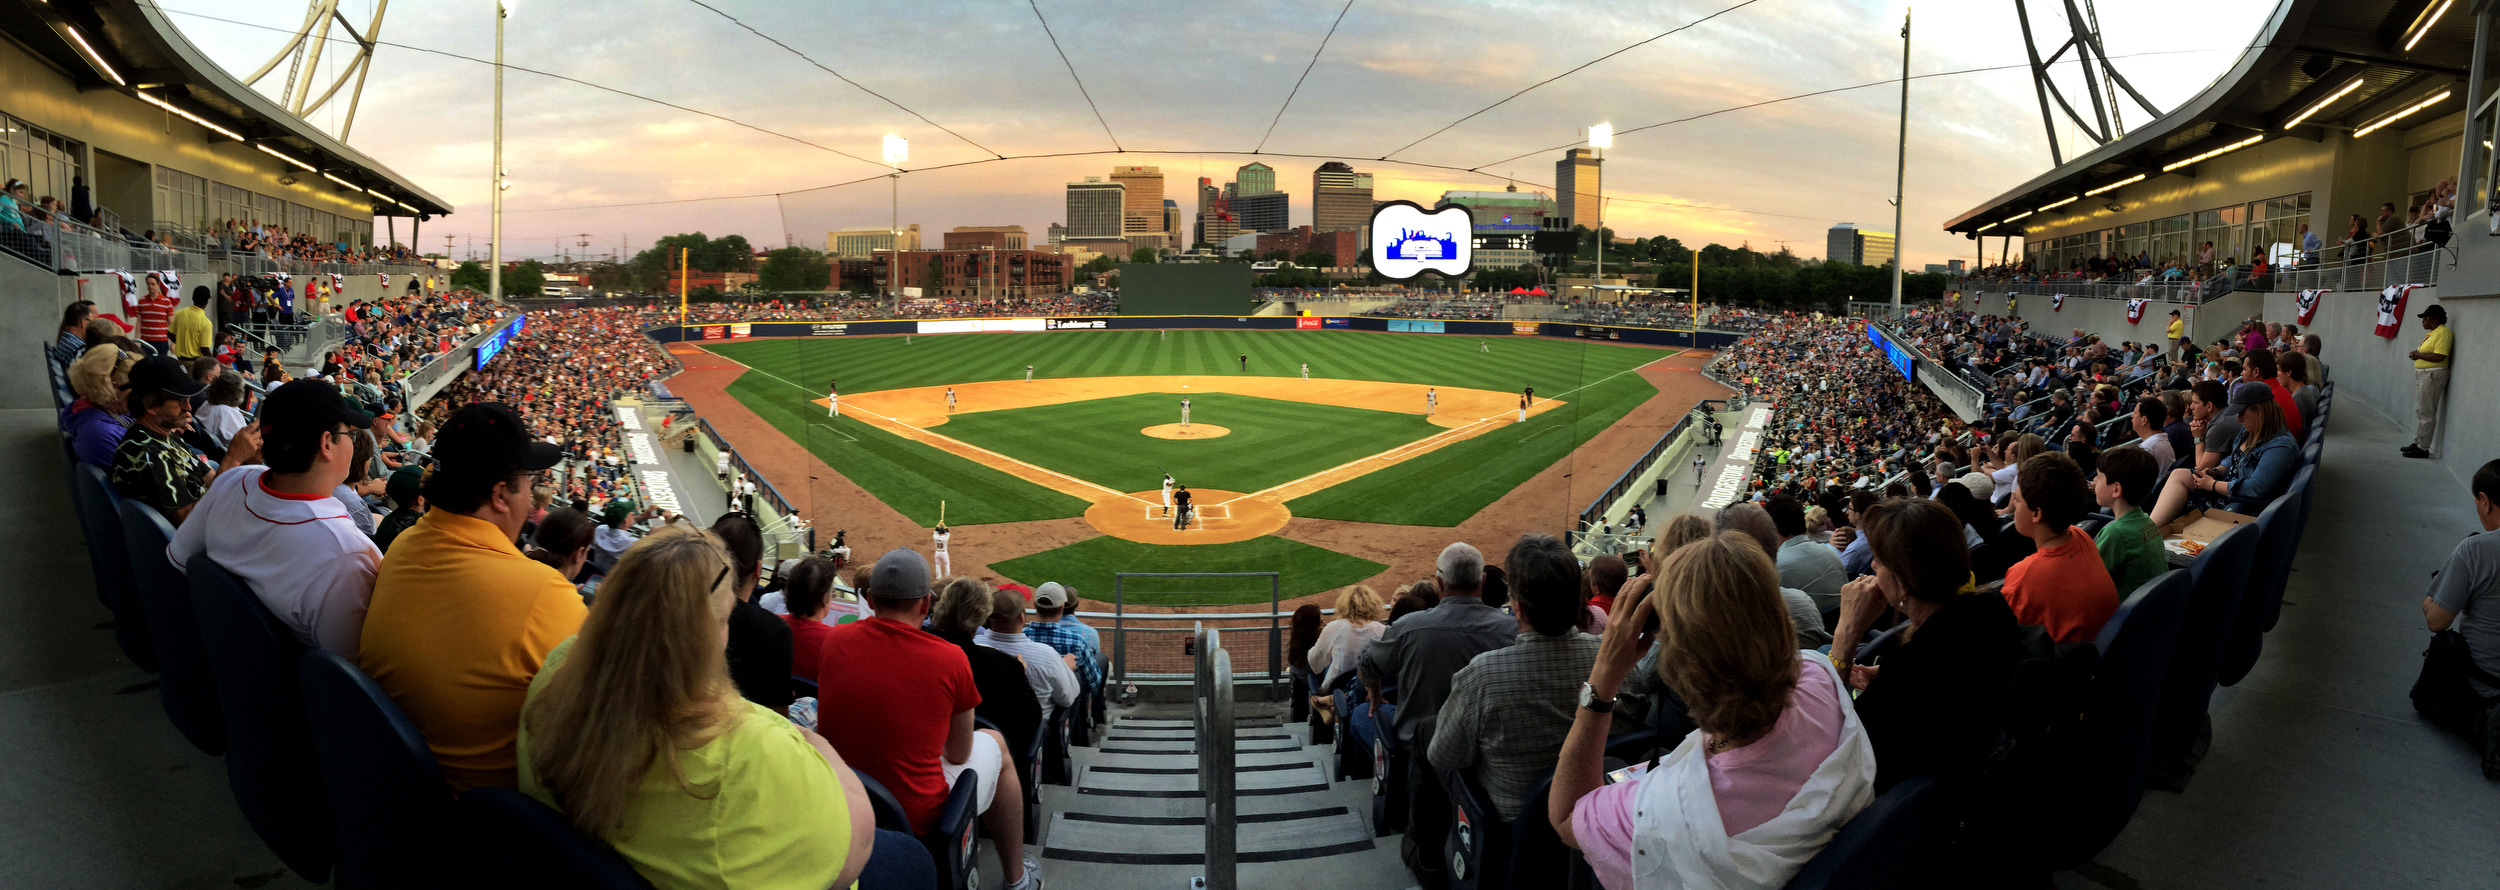 Opening night at First Tennessee Park, home of The Sounds baseball team, April 17, 2015 in Nashville, Tenn.